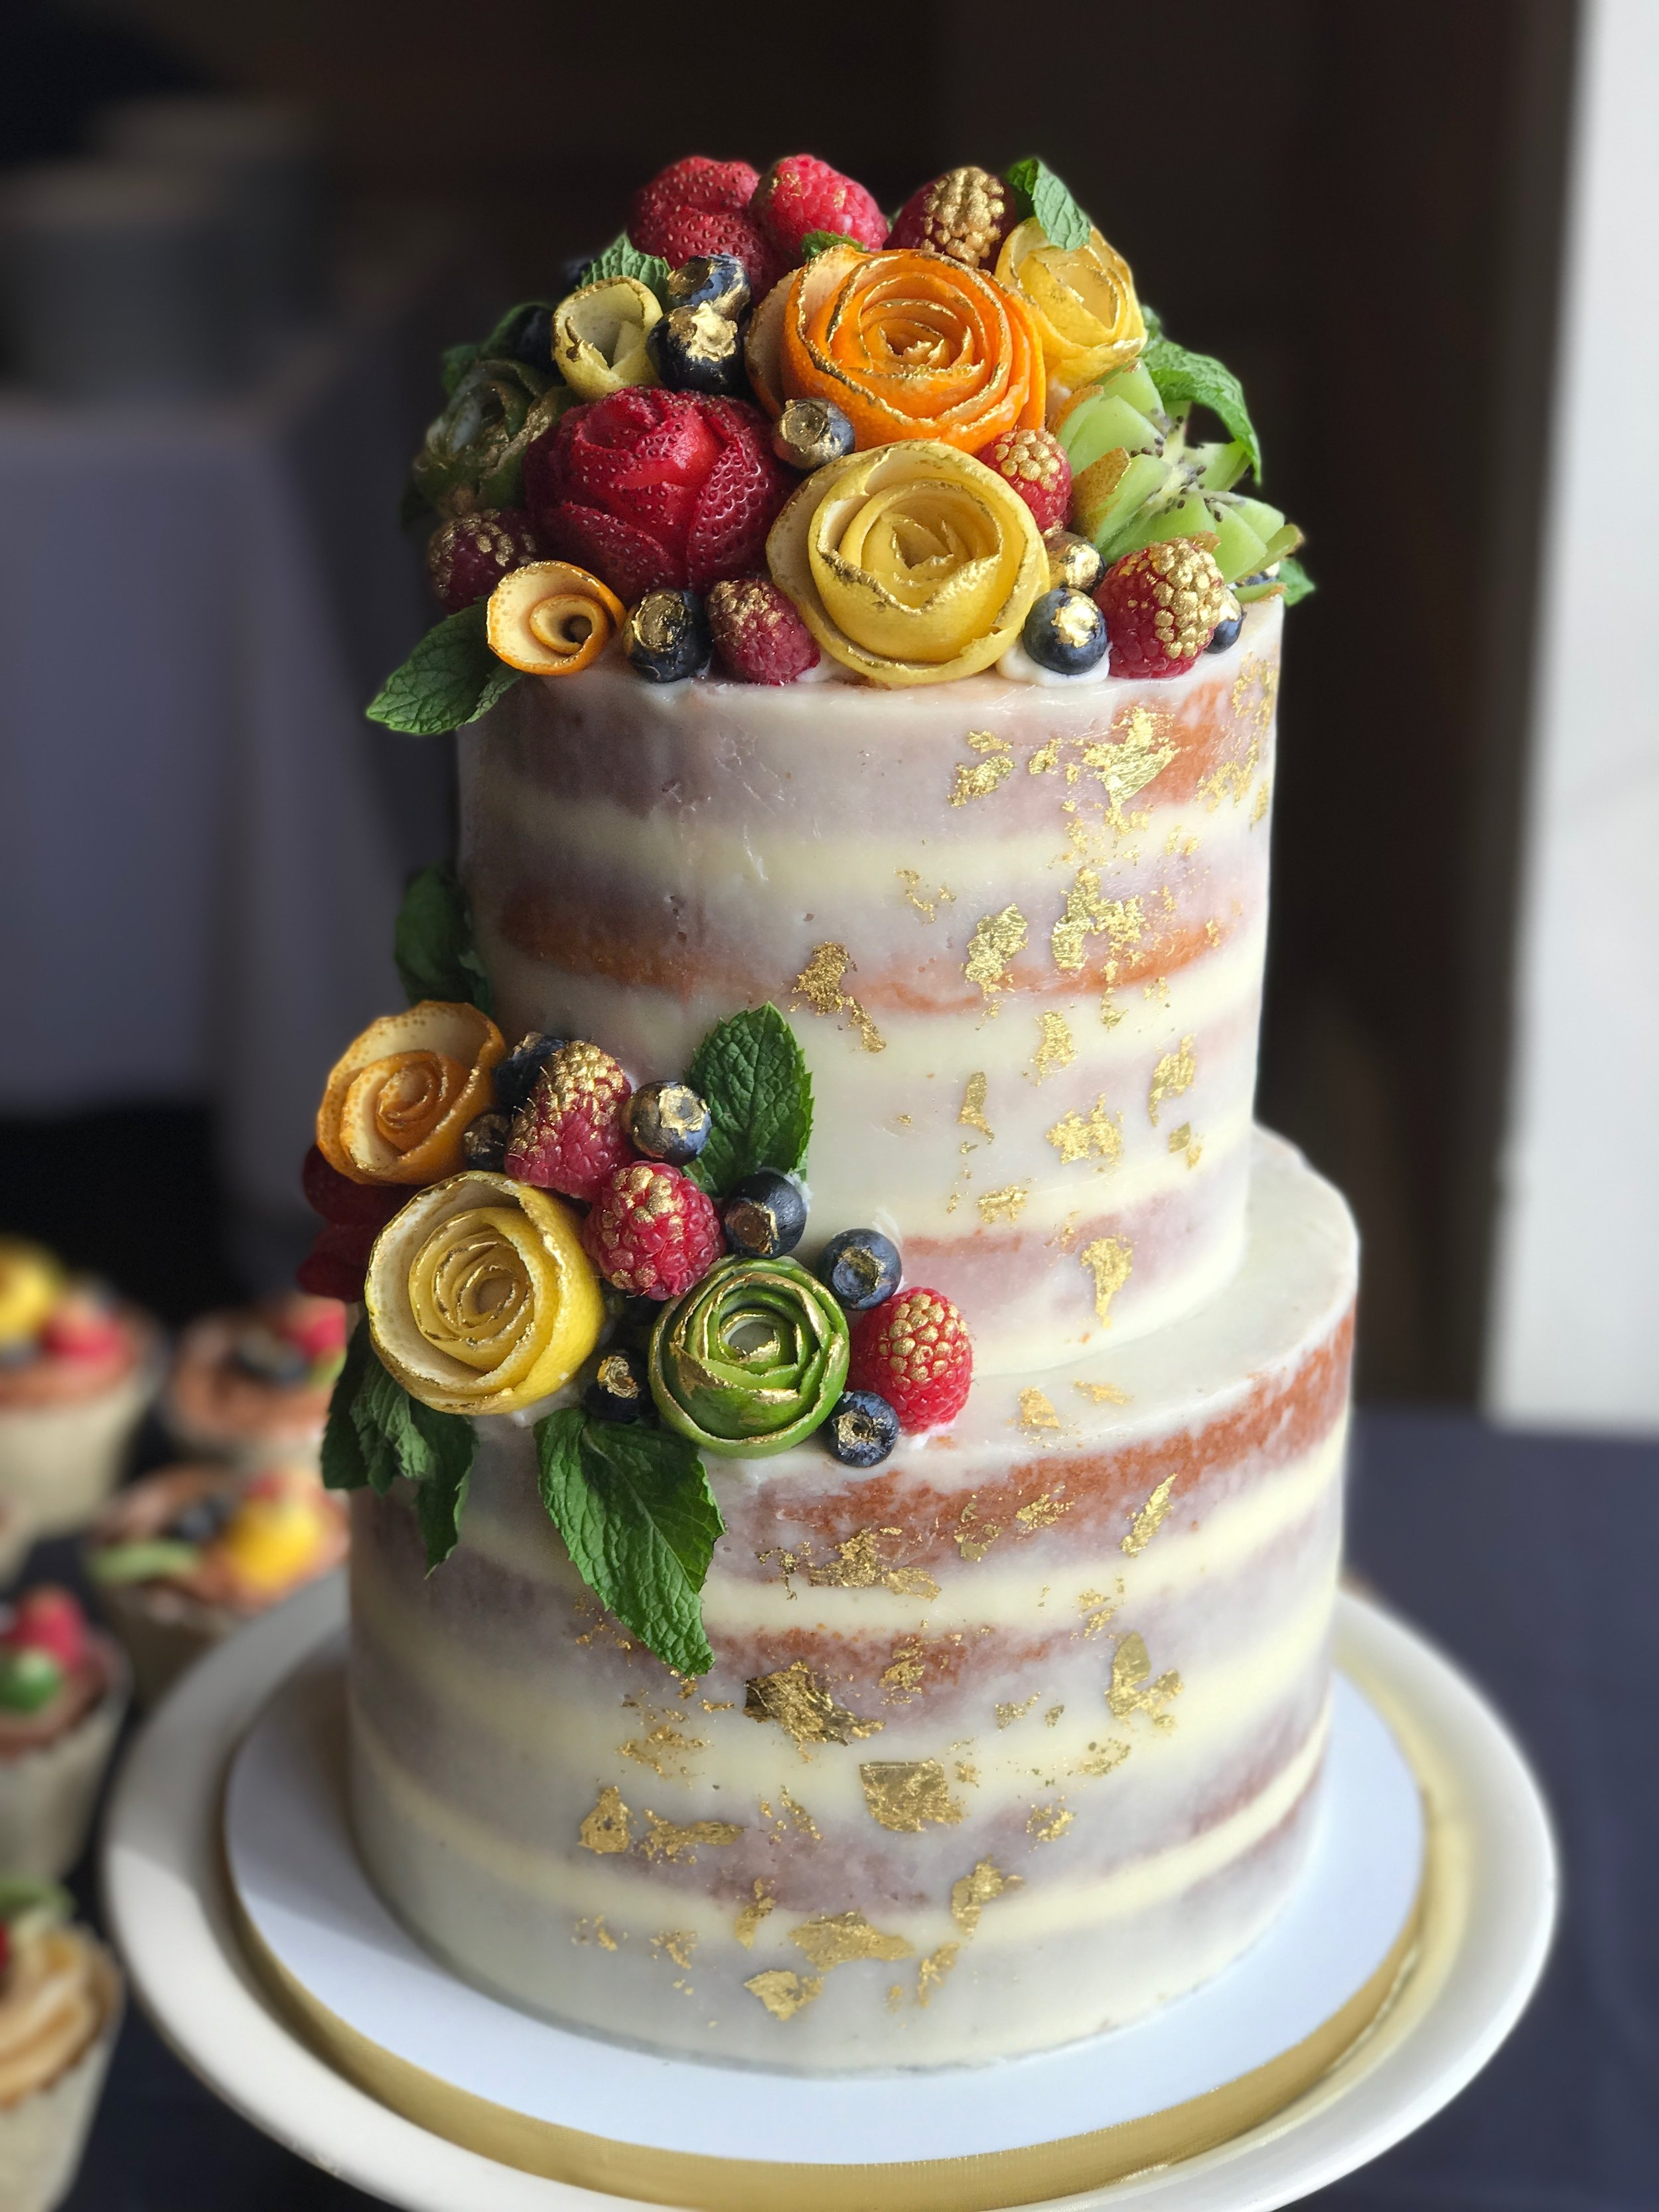 Semi-Naked cake shown with signature fruit flowers. ** Fruit flowers or fresh fresh flowers is an add on**